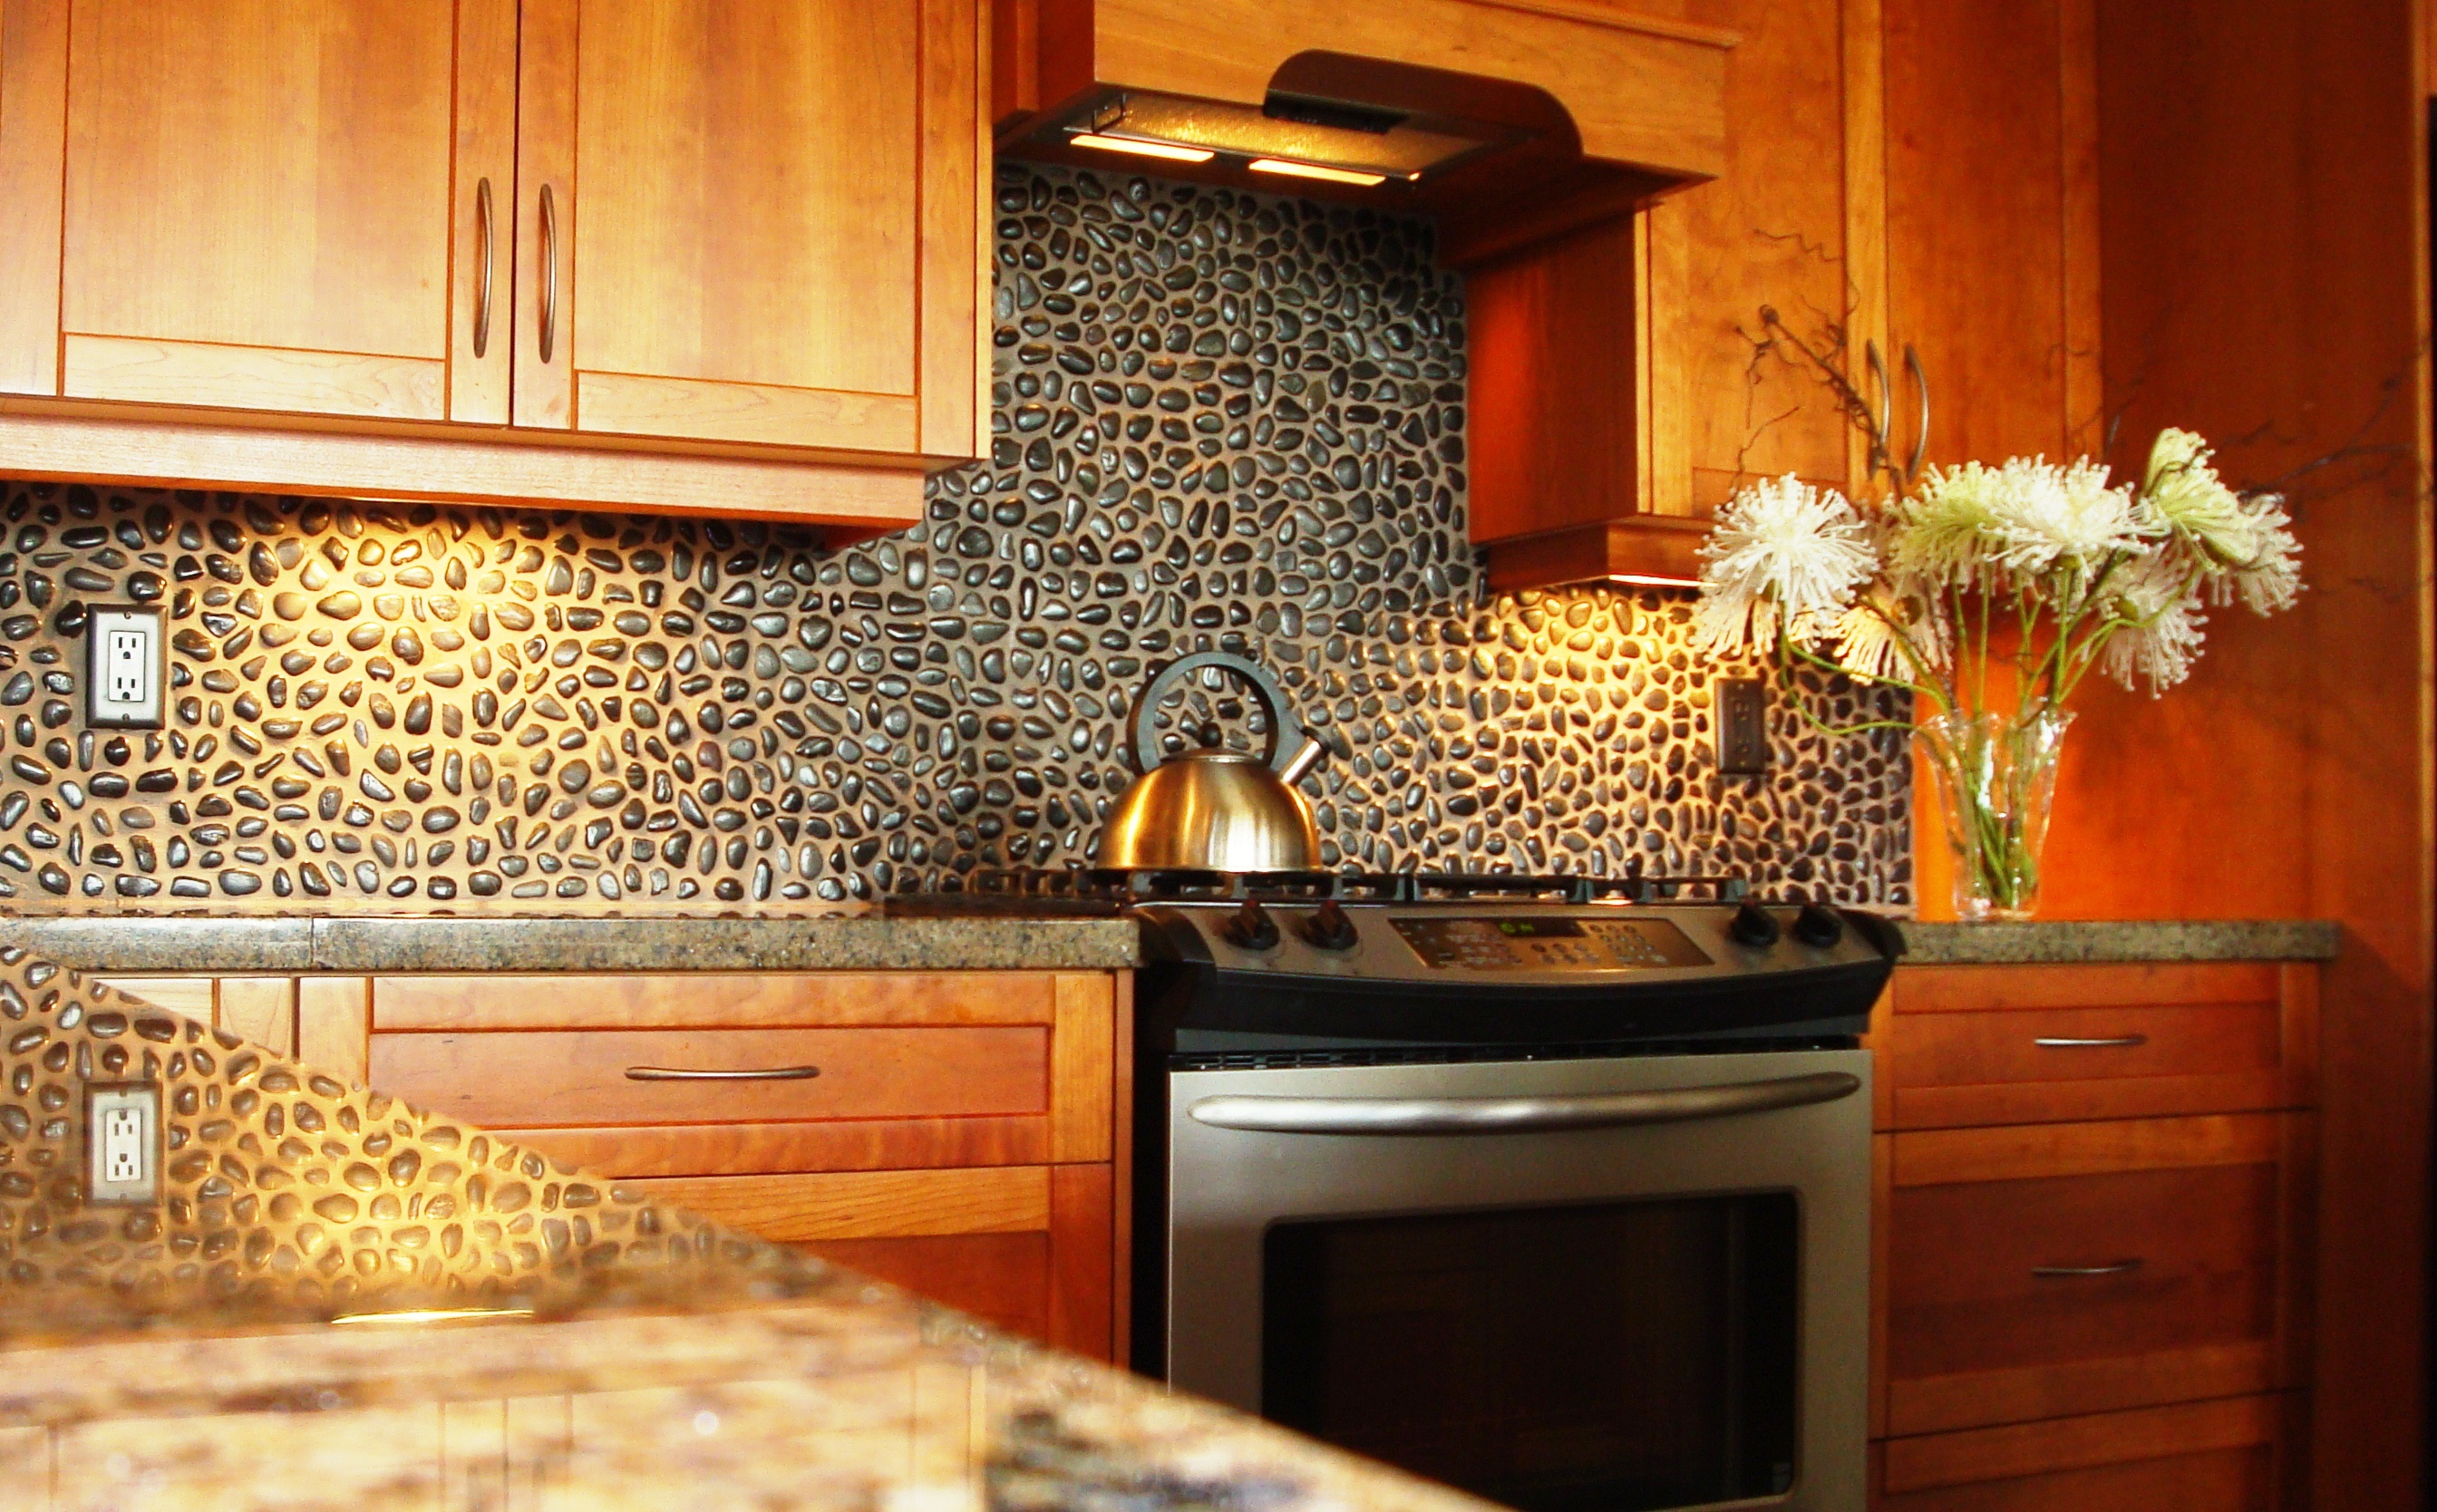 Small And Black Natural Stones Backsplash As The Rustic Backsplash Idea For  Kitchen Luxurious And Expensive